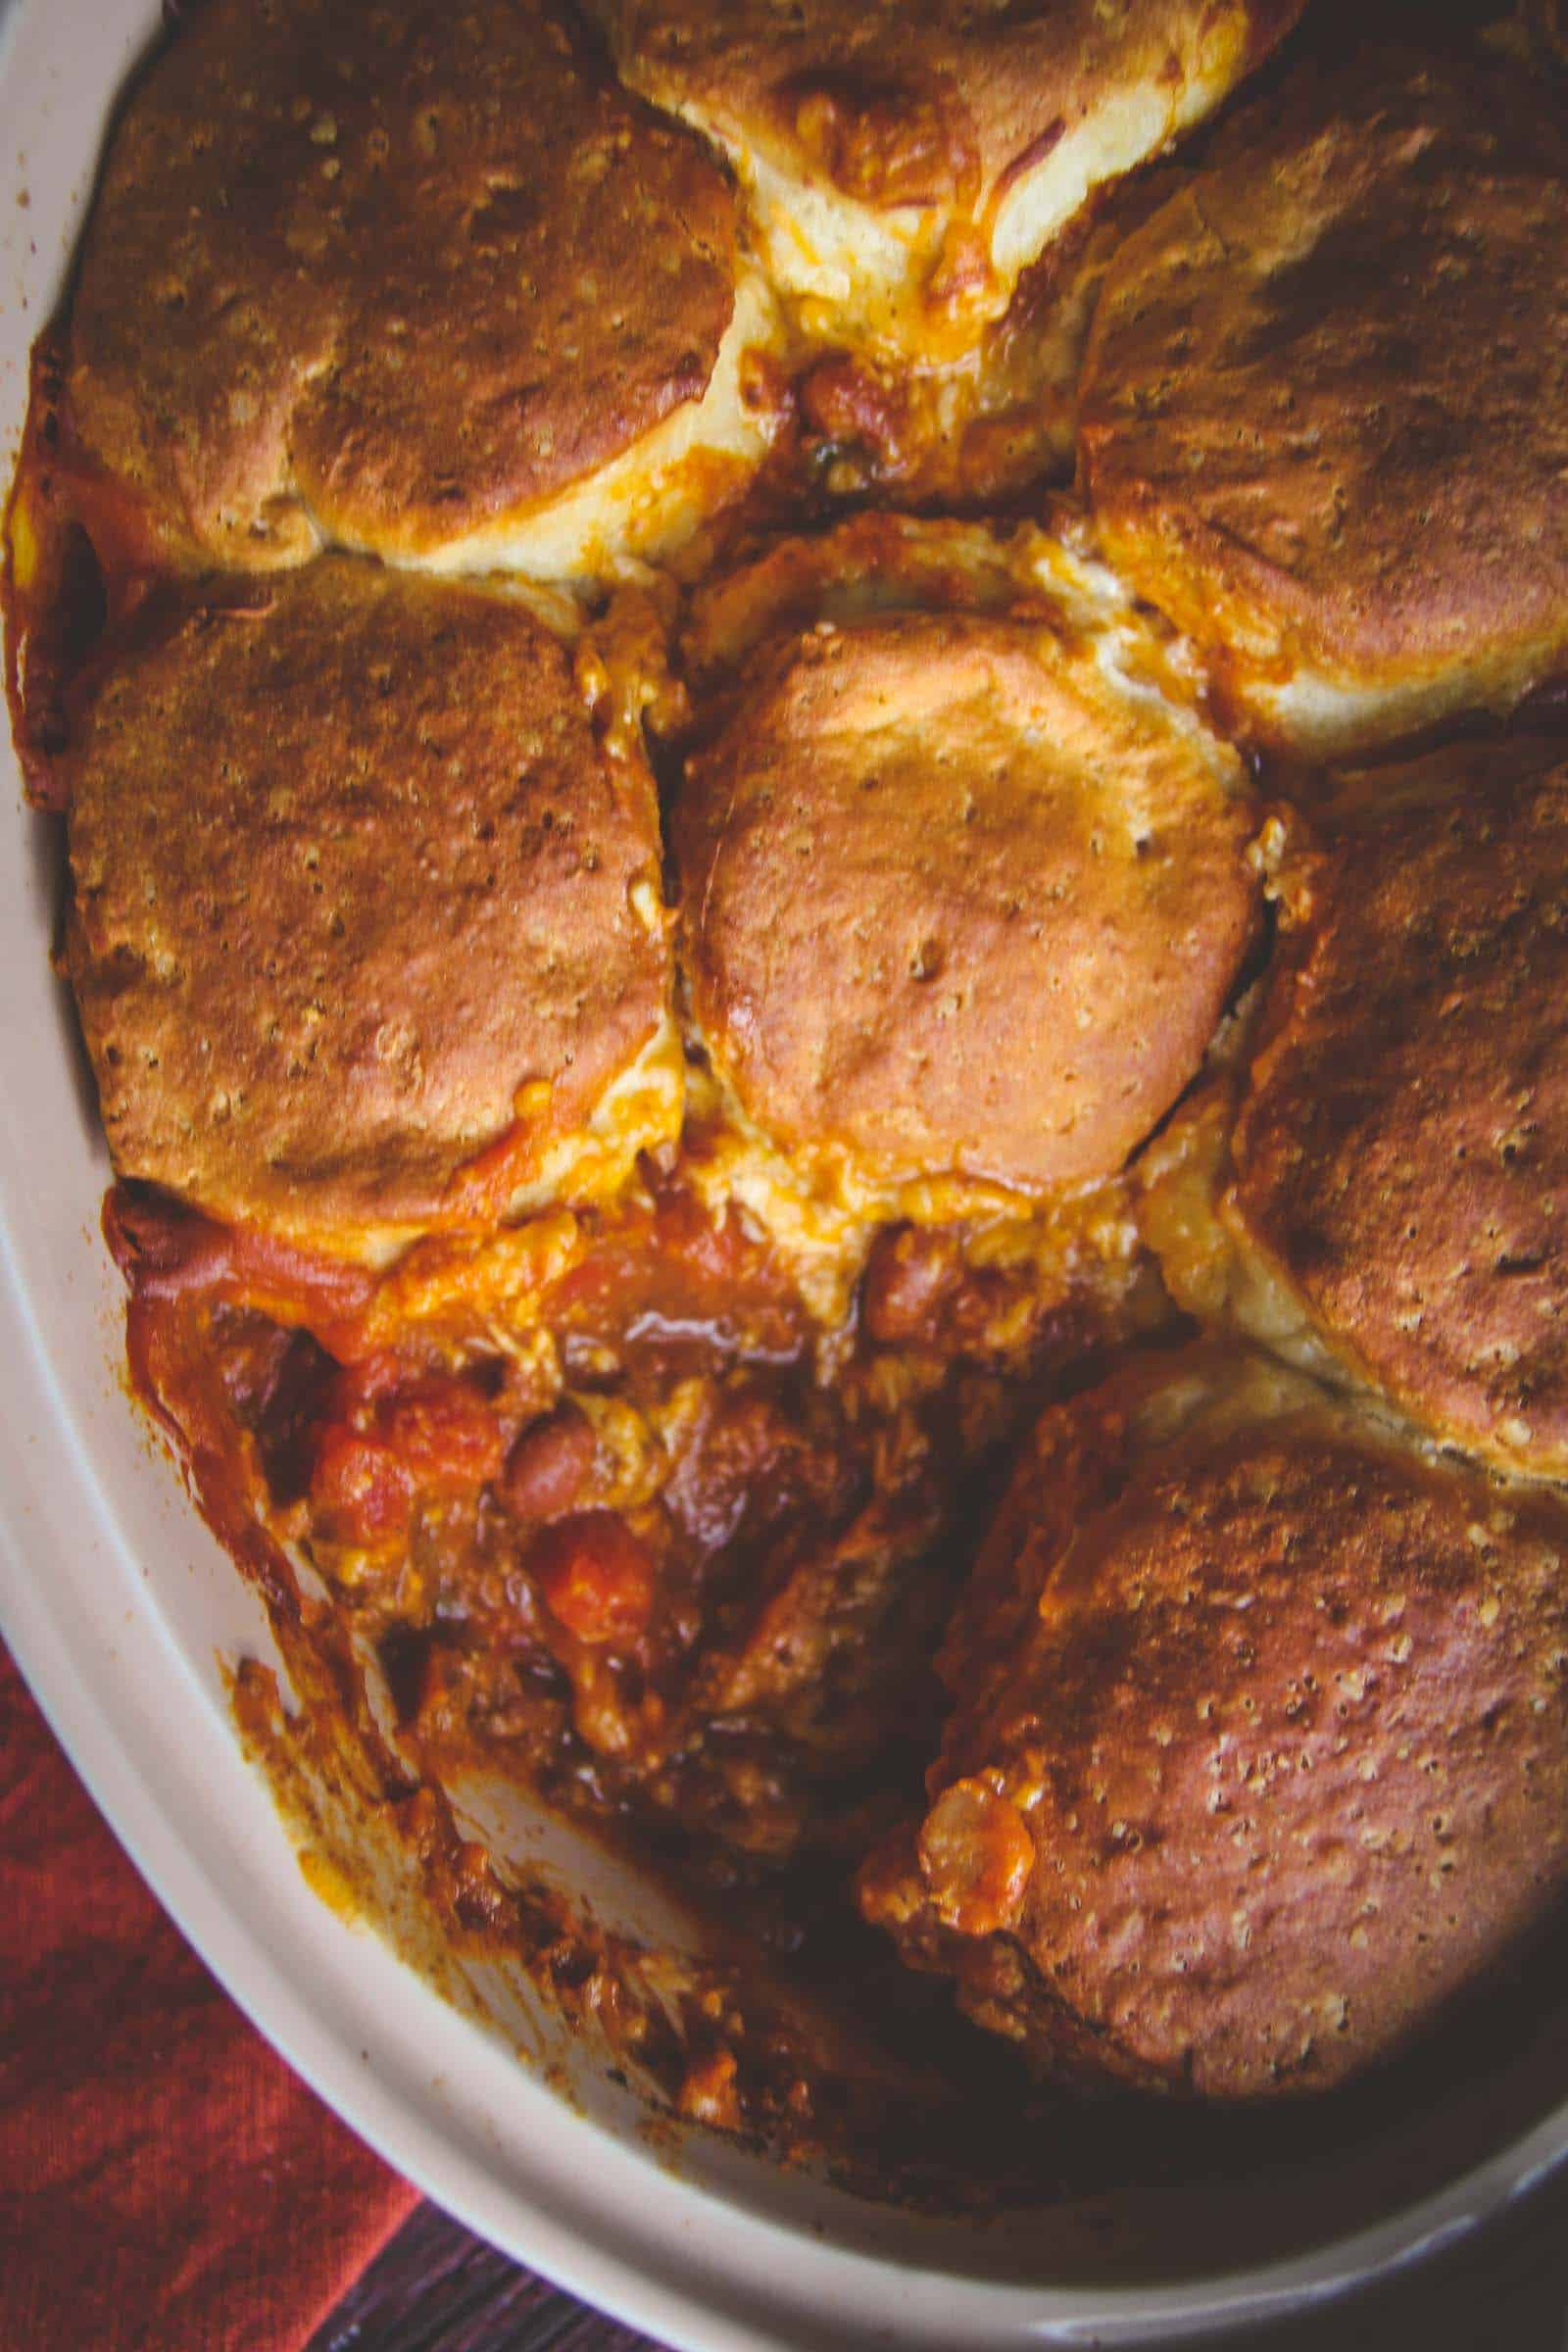 The perfect fall dinner idea is these 5 ingedient pumpkin chili biscuit bake